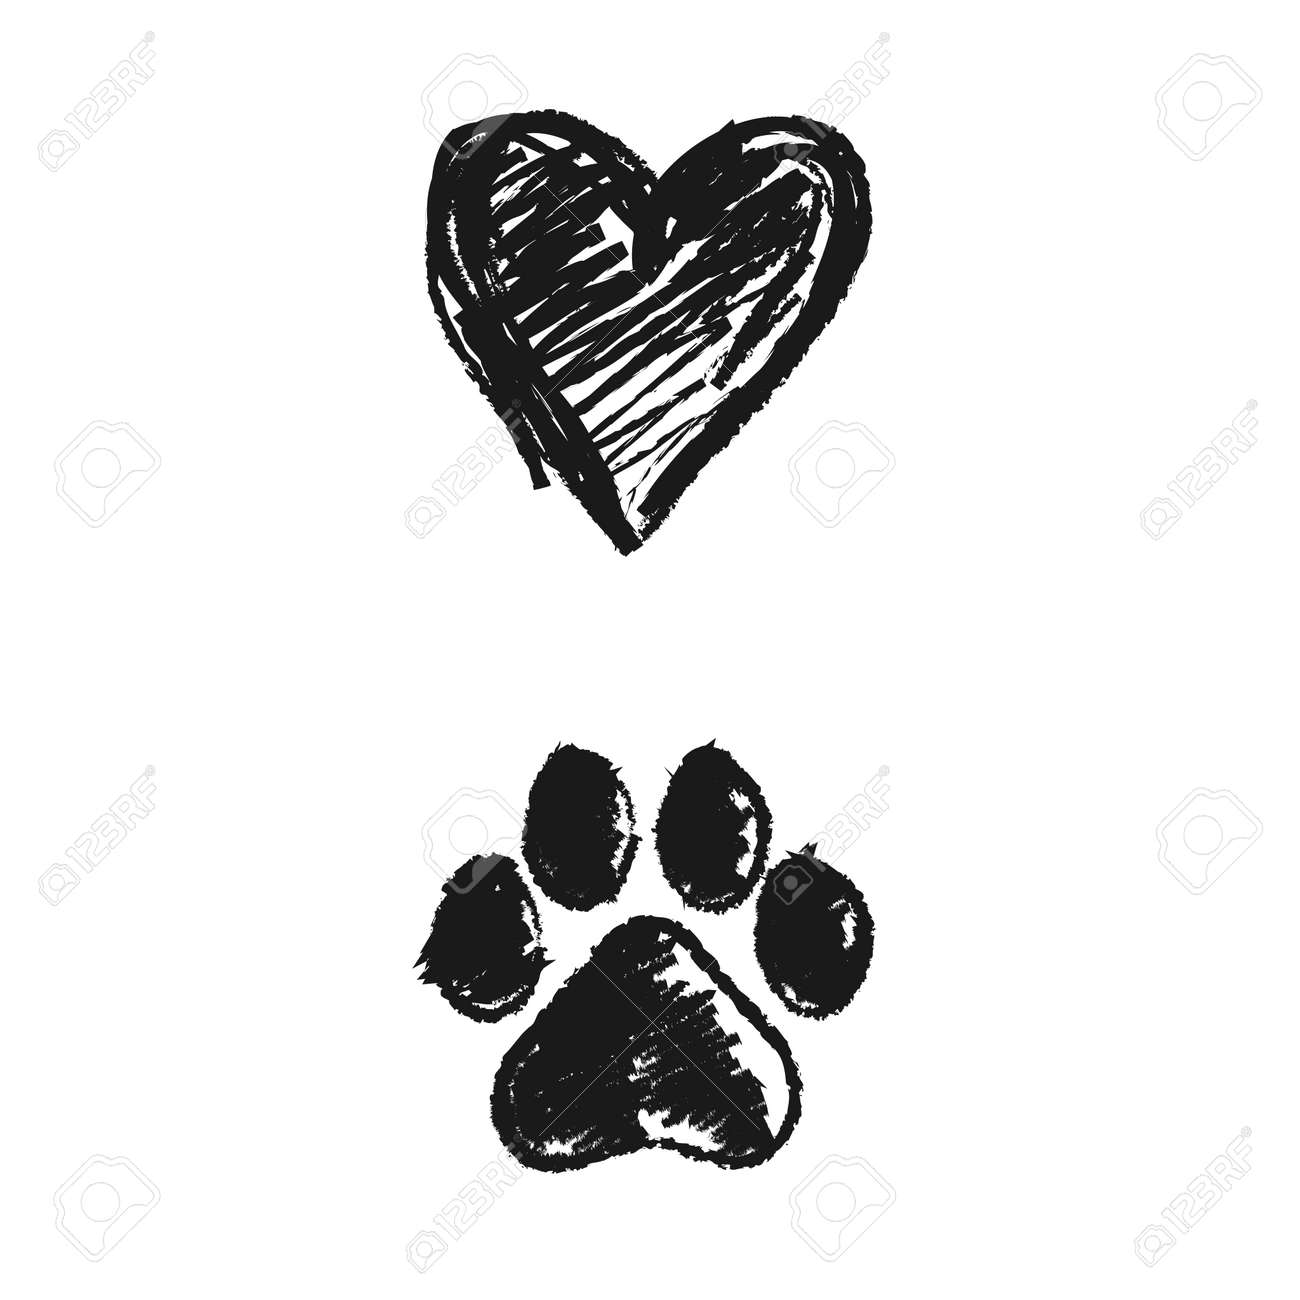 Hand Drawn Doodle Of Animal Footprint And Heart Vector Illustration